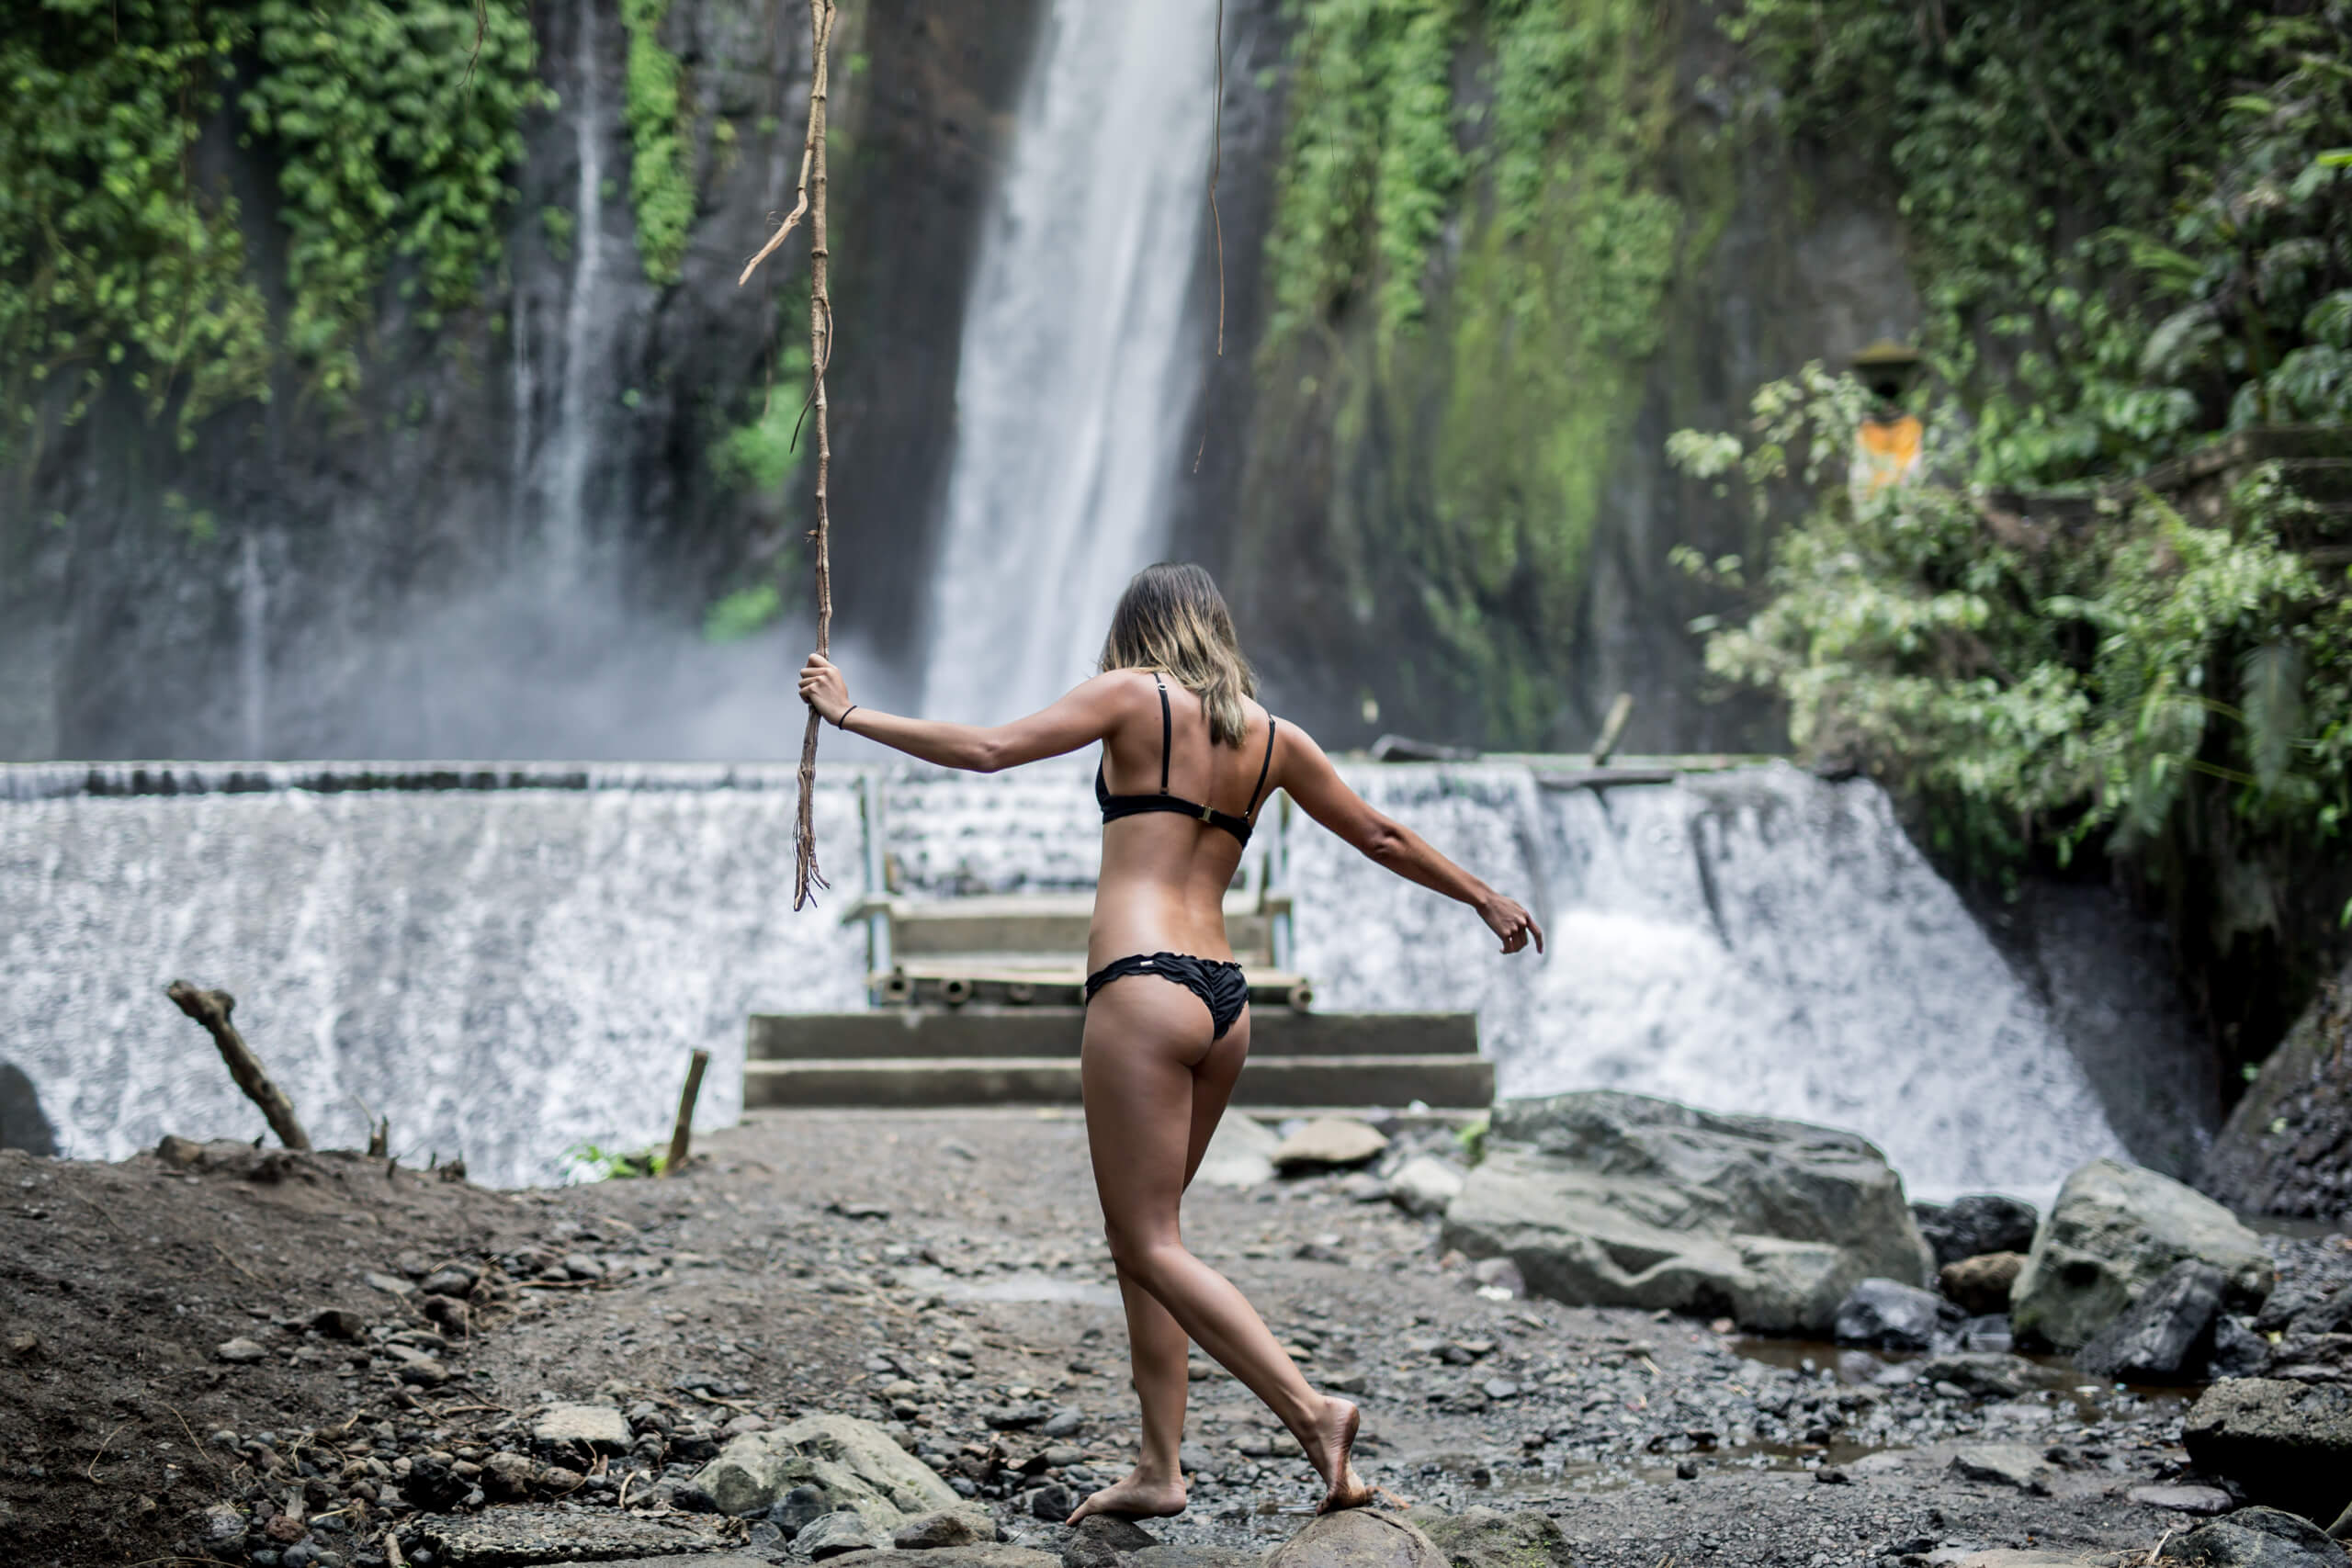 MUNDUK WATERFALL | When you find a vine in the jungle its hard not to try and swing on it!